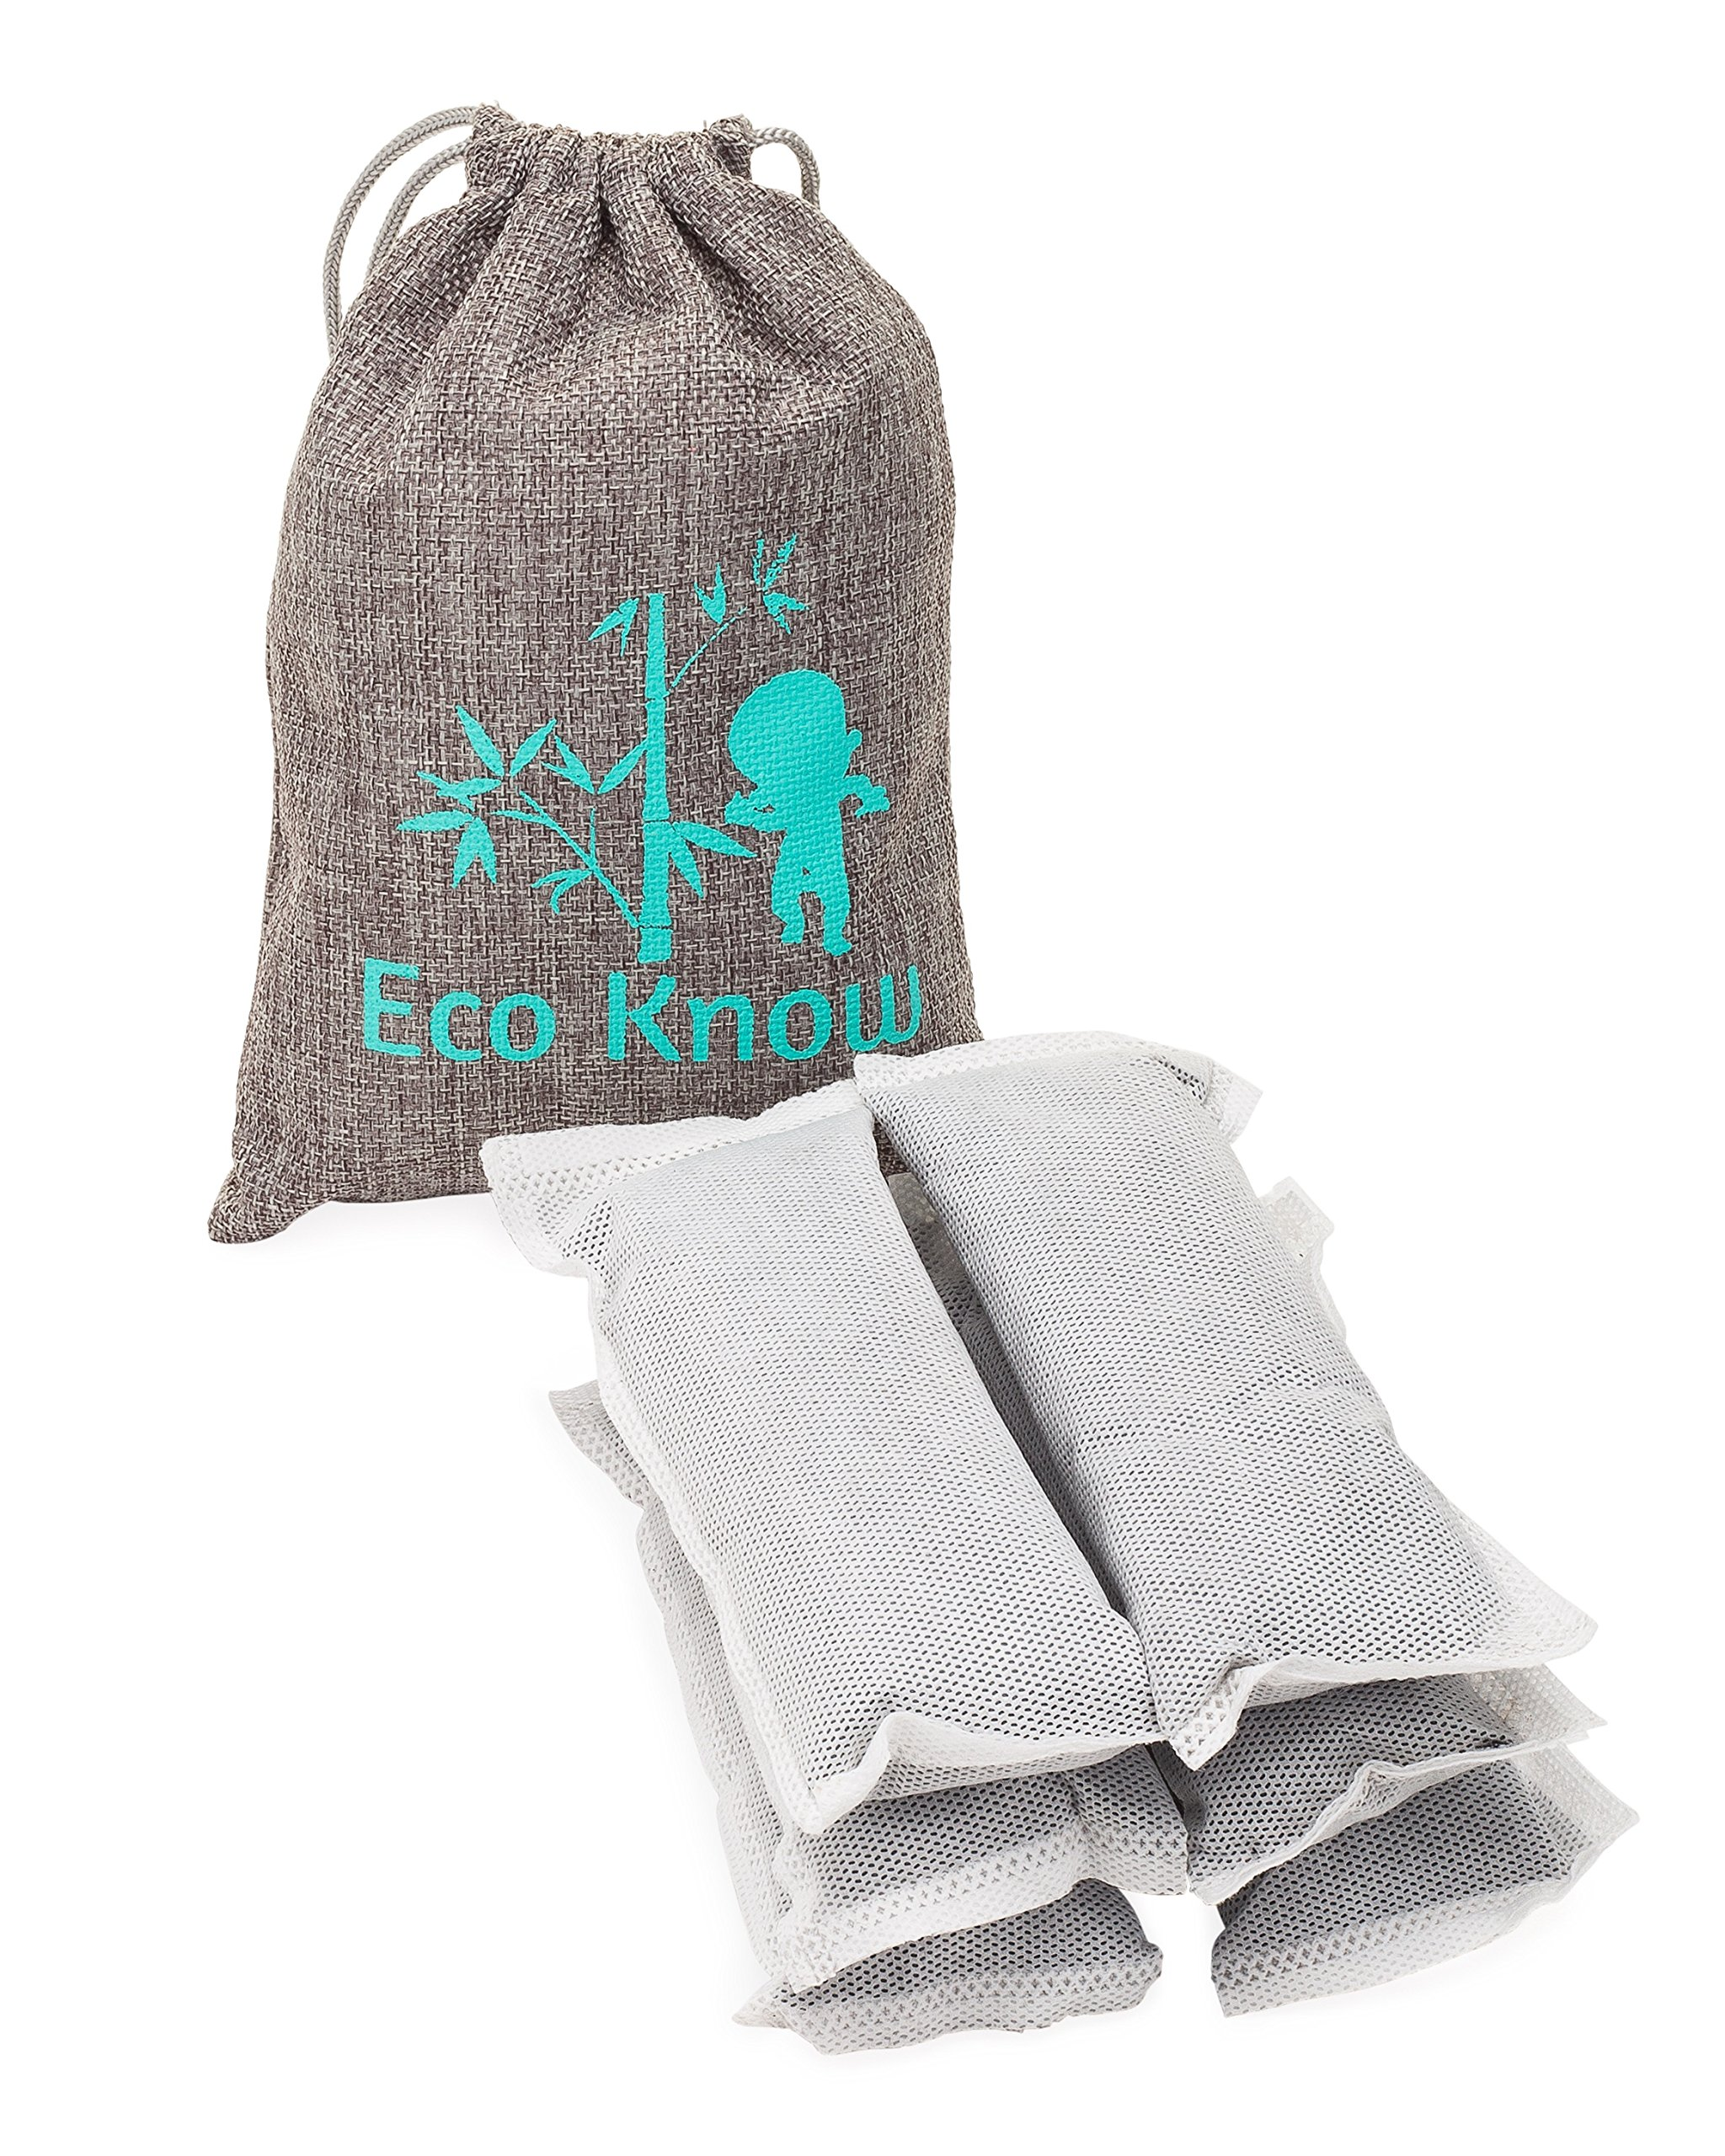 Set of 6 Large (50g) Natural Bamboo Charcoal Diaper Pail Household Home Deodorizers by Eco-Know